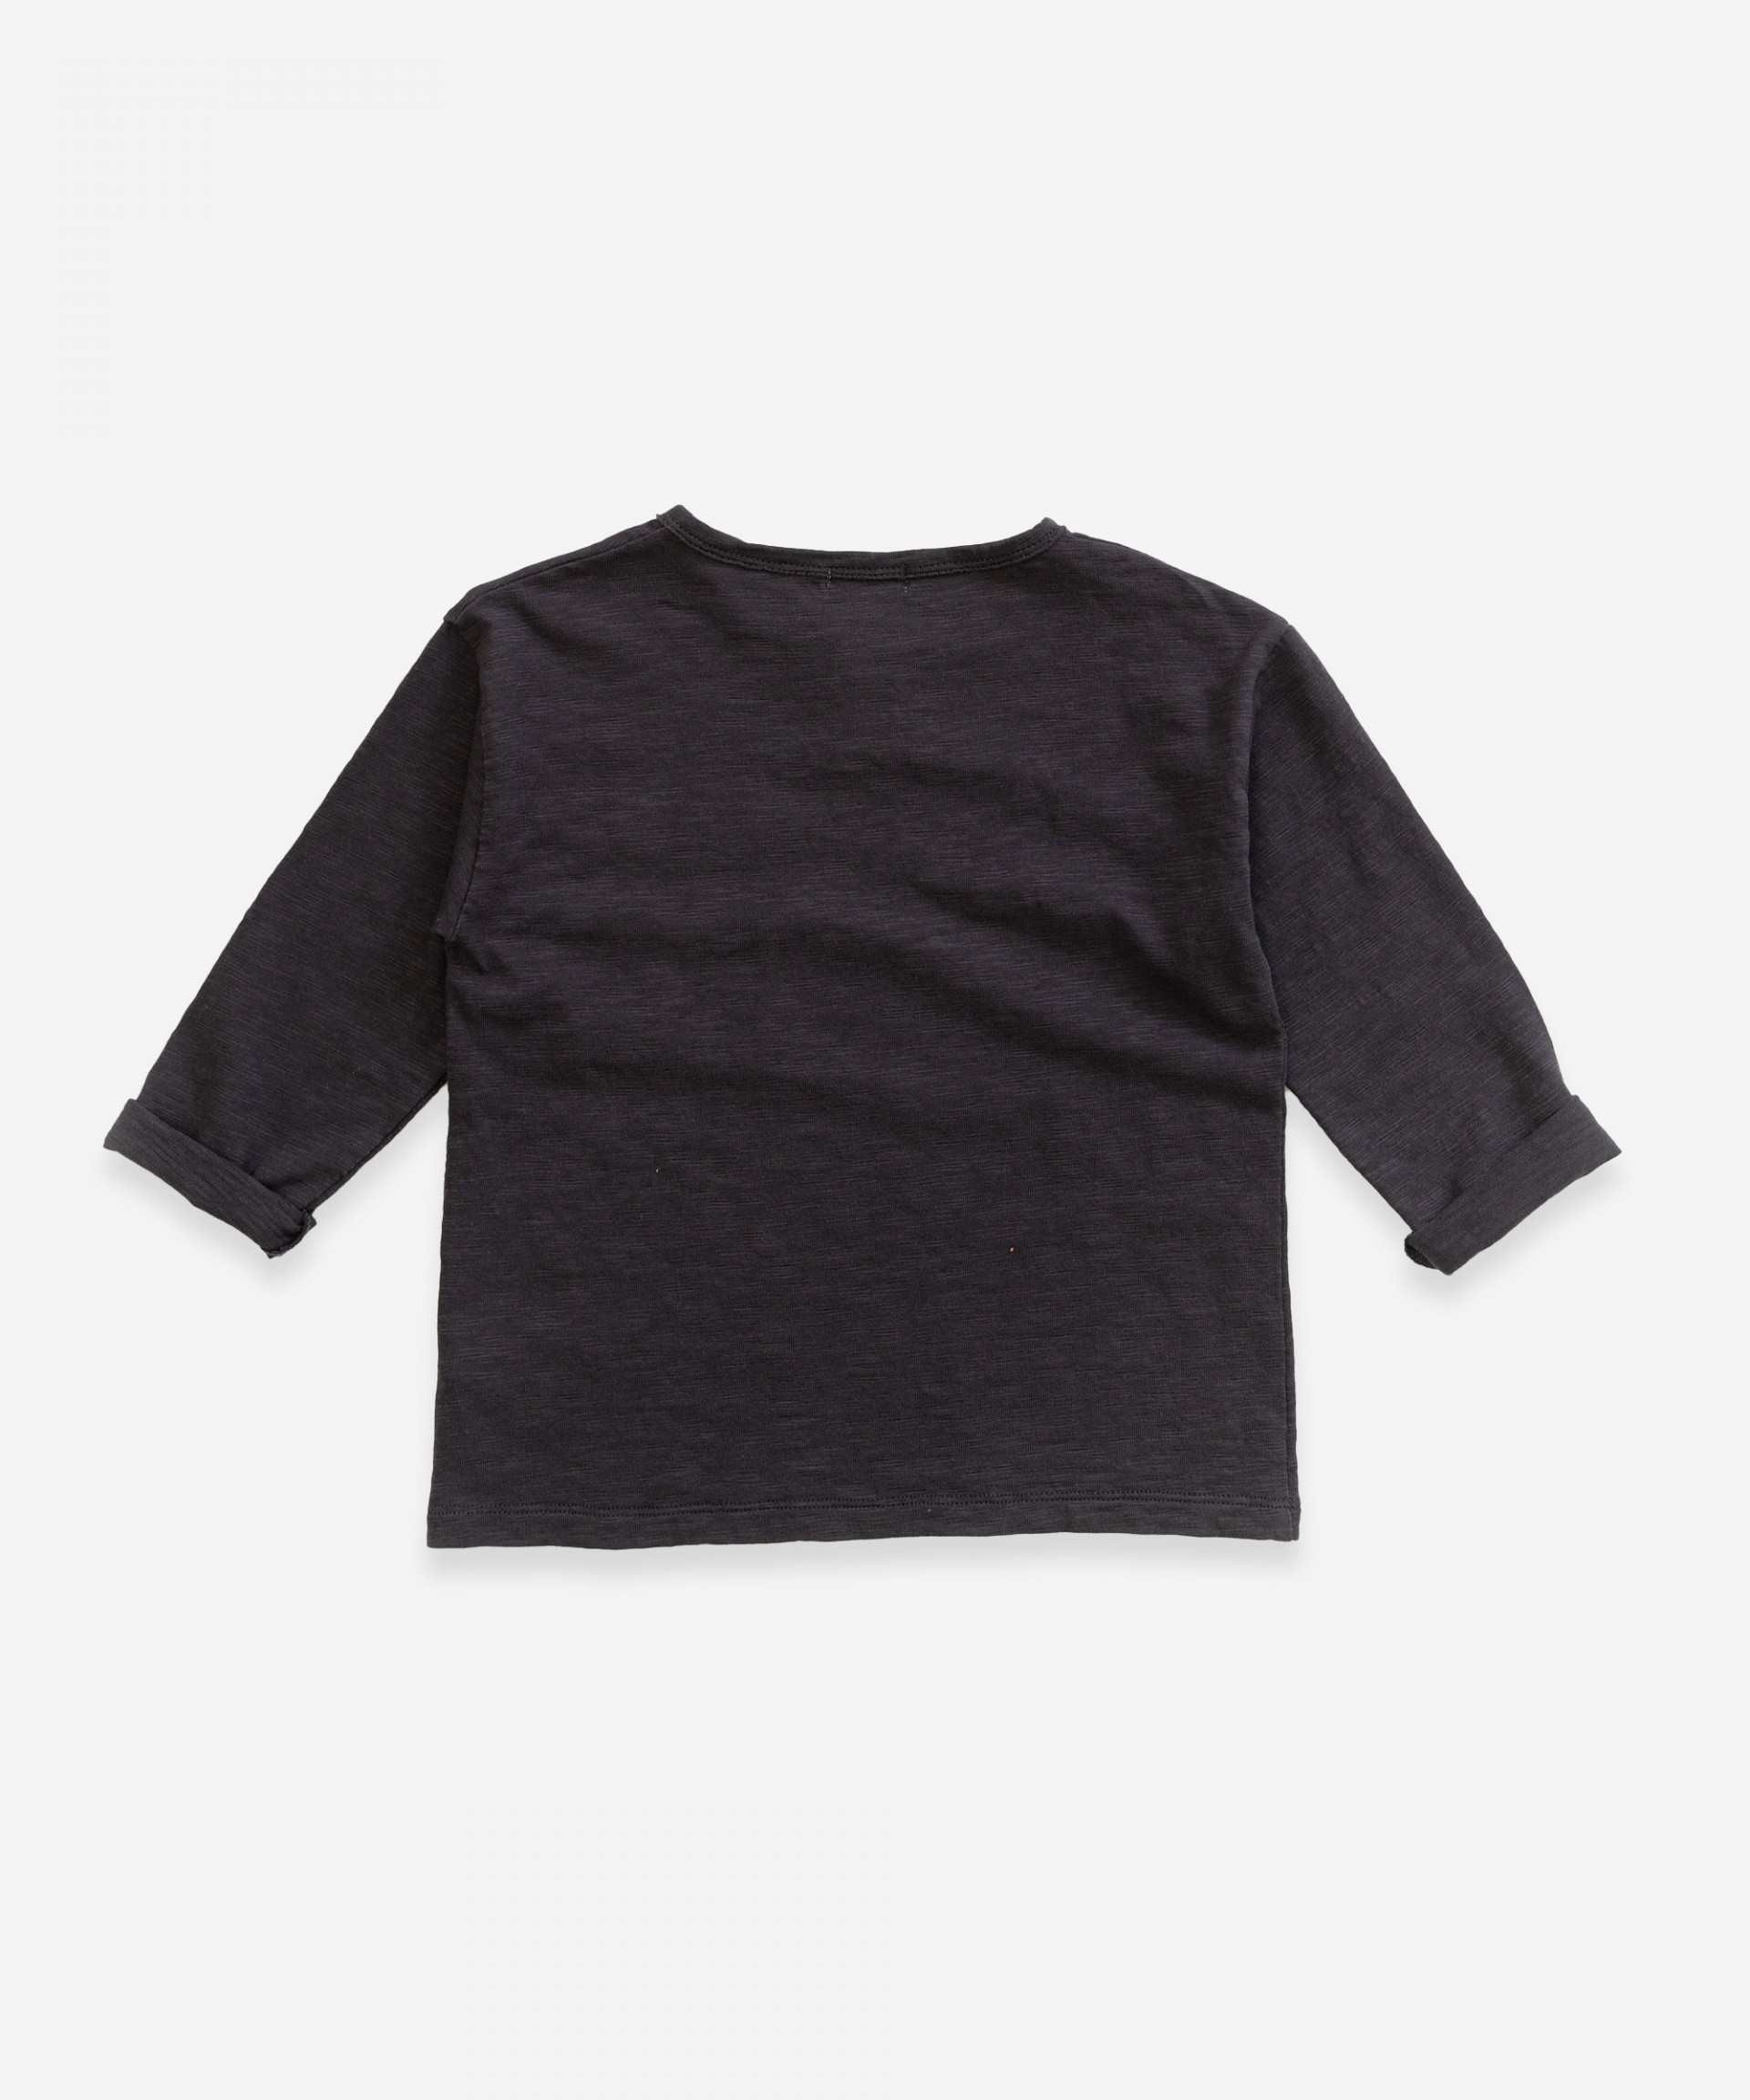 Long-sleeved t-shirt in organic cotton | Weaving